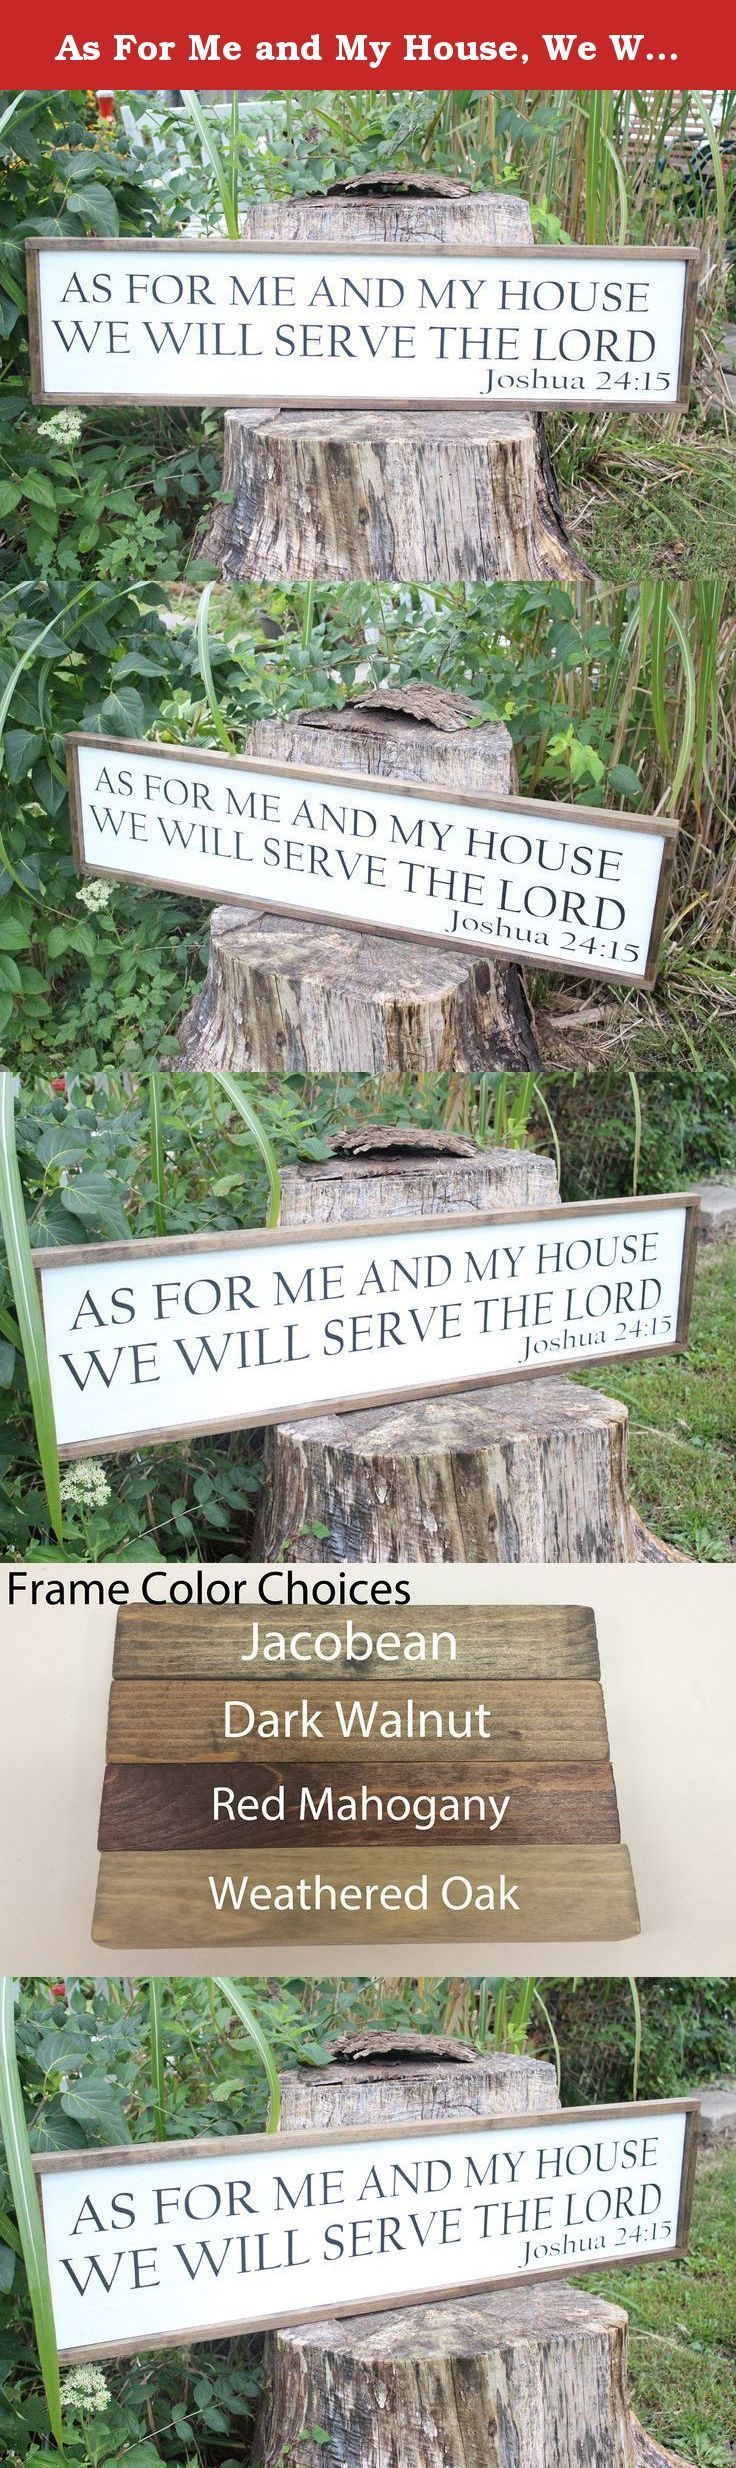 "As For Me and My House, We Will Serve the Lord, Joshua 24:15 Framed Distressed Wood Sign, Christian Home. Sign Shown: 12""x48"" white background 